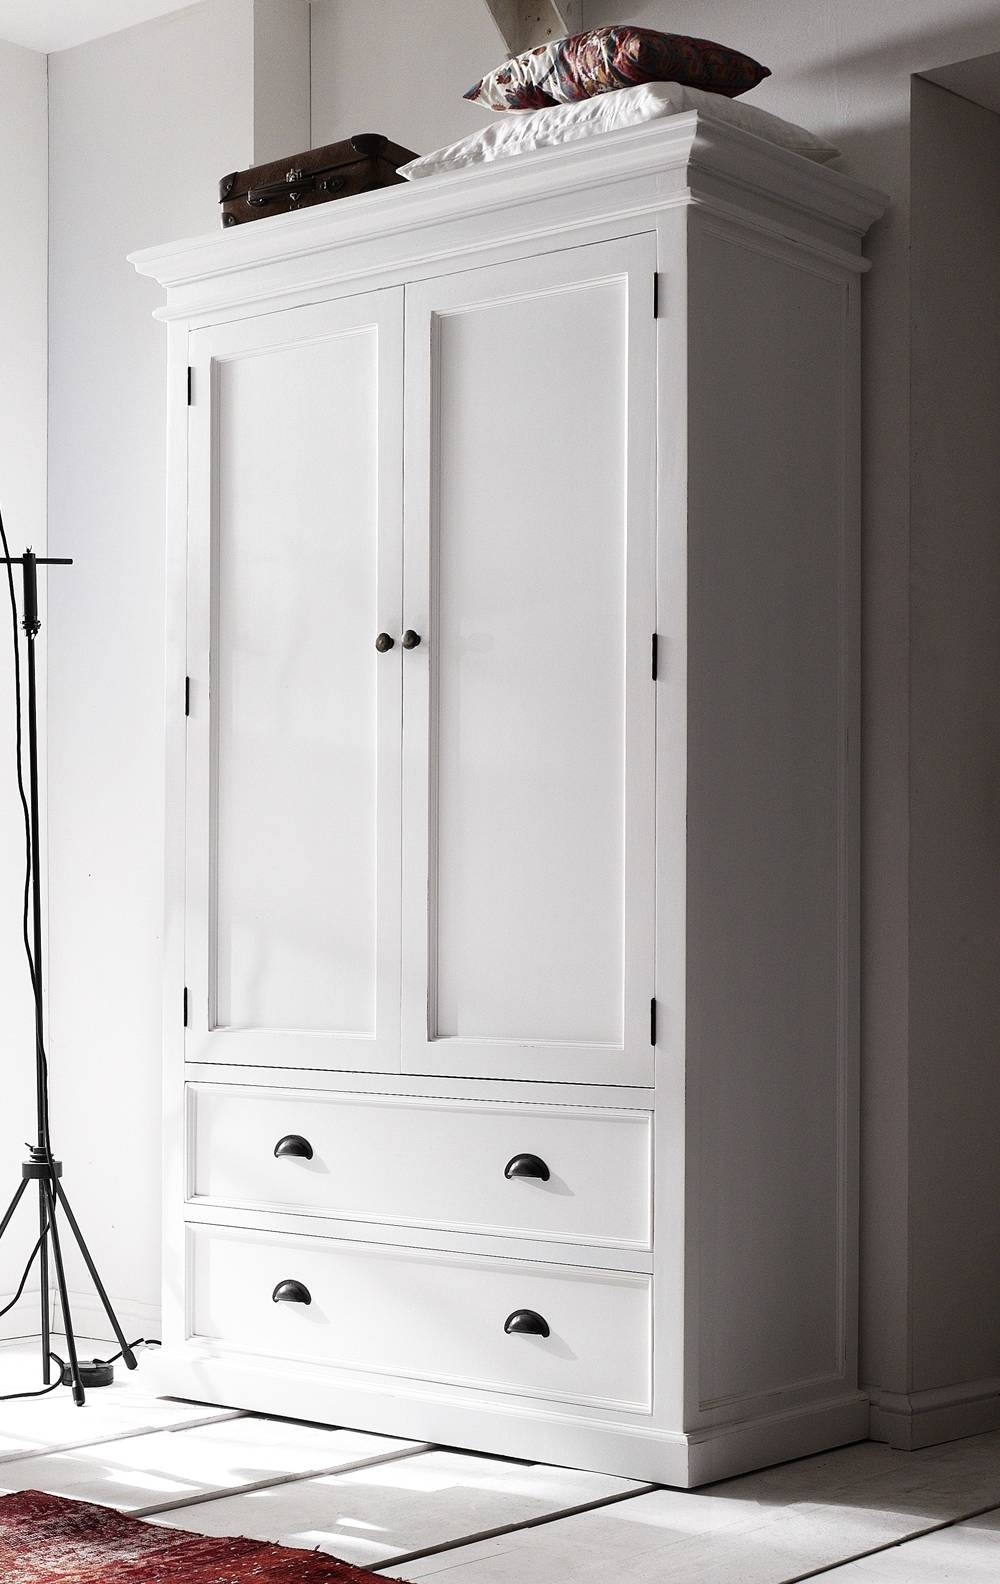 White Painted Wardrobe With 2 Drawers - Belgravia Painted in White Double Wardrobes With Drawers (Image 15 of 15)